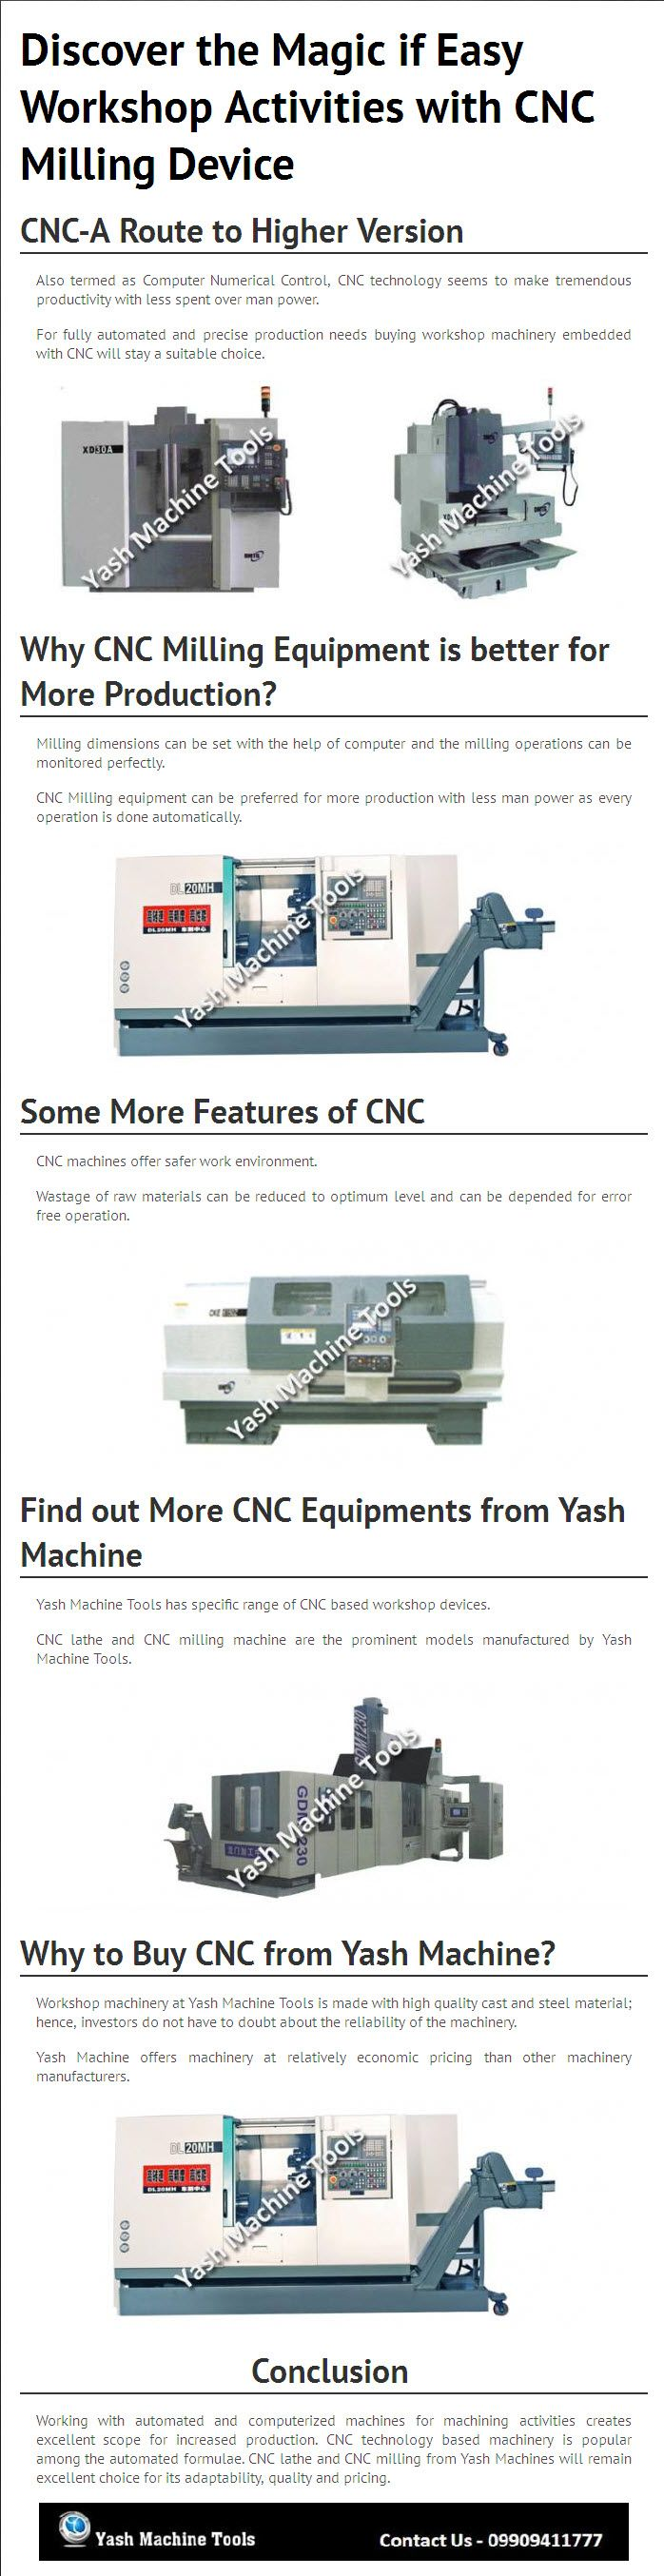 Find out the features of CNC concept in workshop machinery and know more about how milling device with CNC stays effective for workshop activities. Learn more about CNC milling machines offered by Yash Machine Tools. Yash Machine offers machinery at relatively economic pricing than other machinery manufacturers. Kindly Visit - http://www.yashmachine.com/cnc-milling-vmc